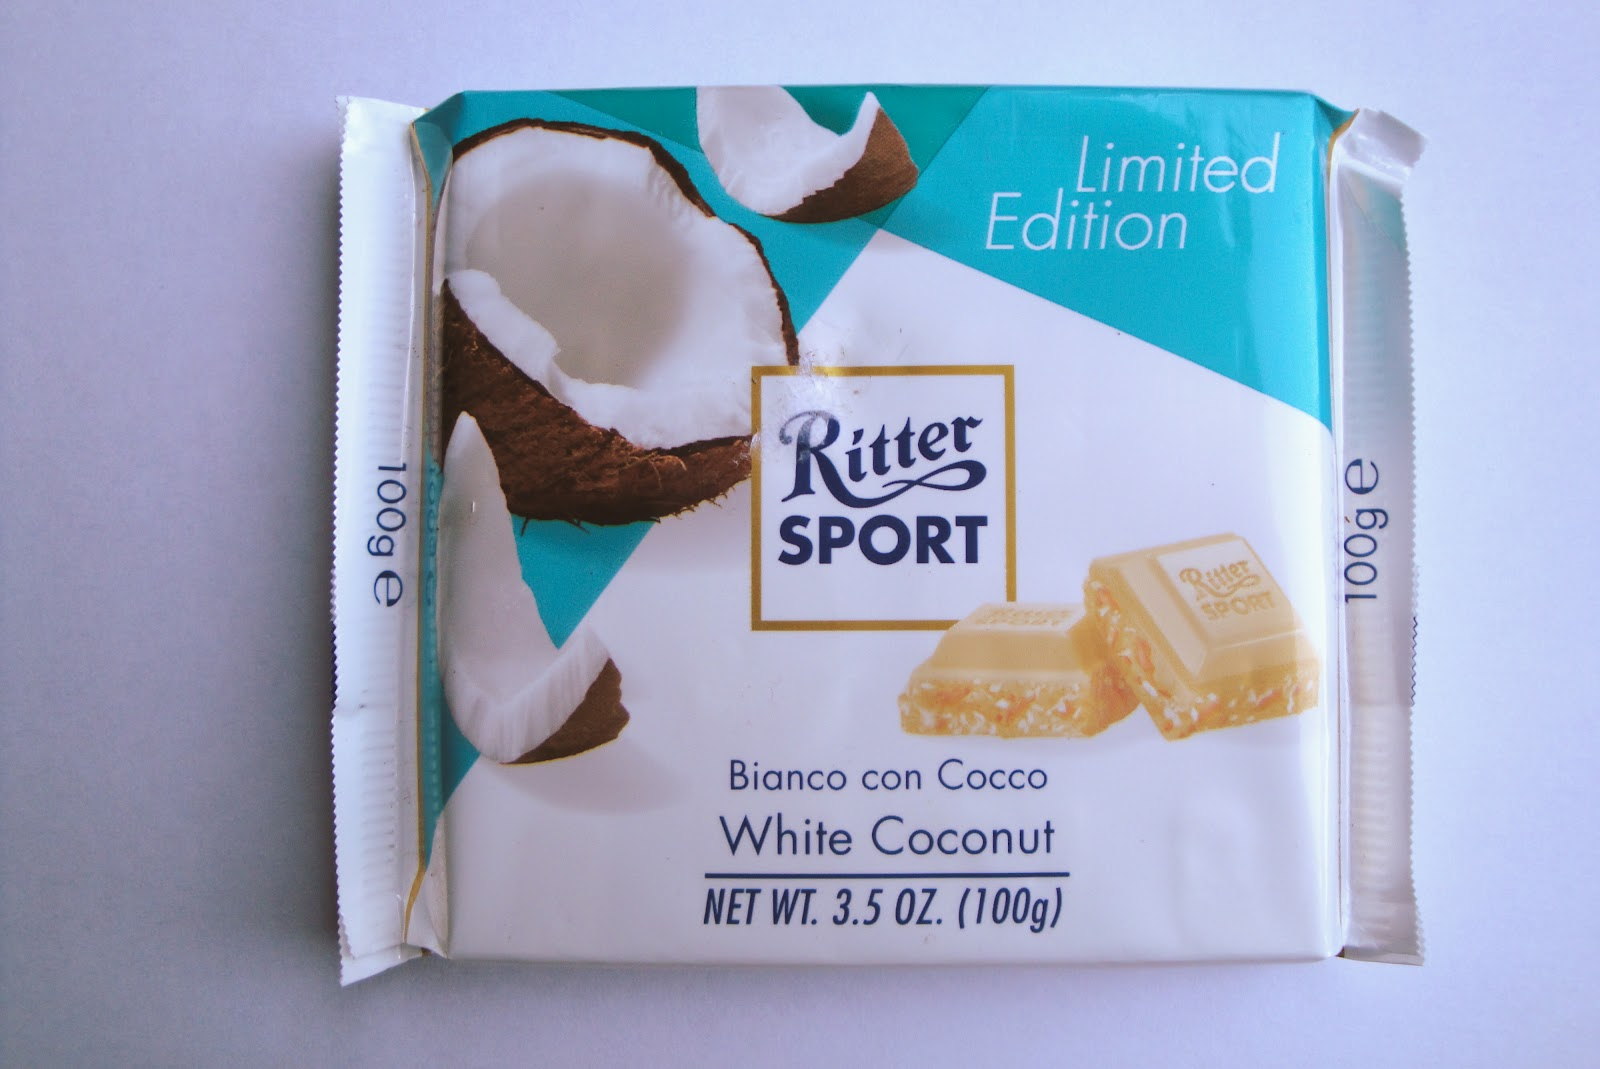 Grocery Gems: Ritter Sport Limited Edition White Coconut chocolate